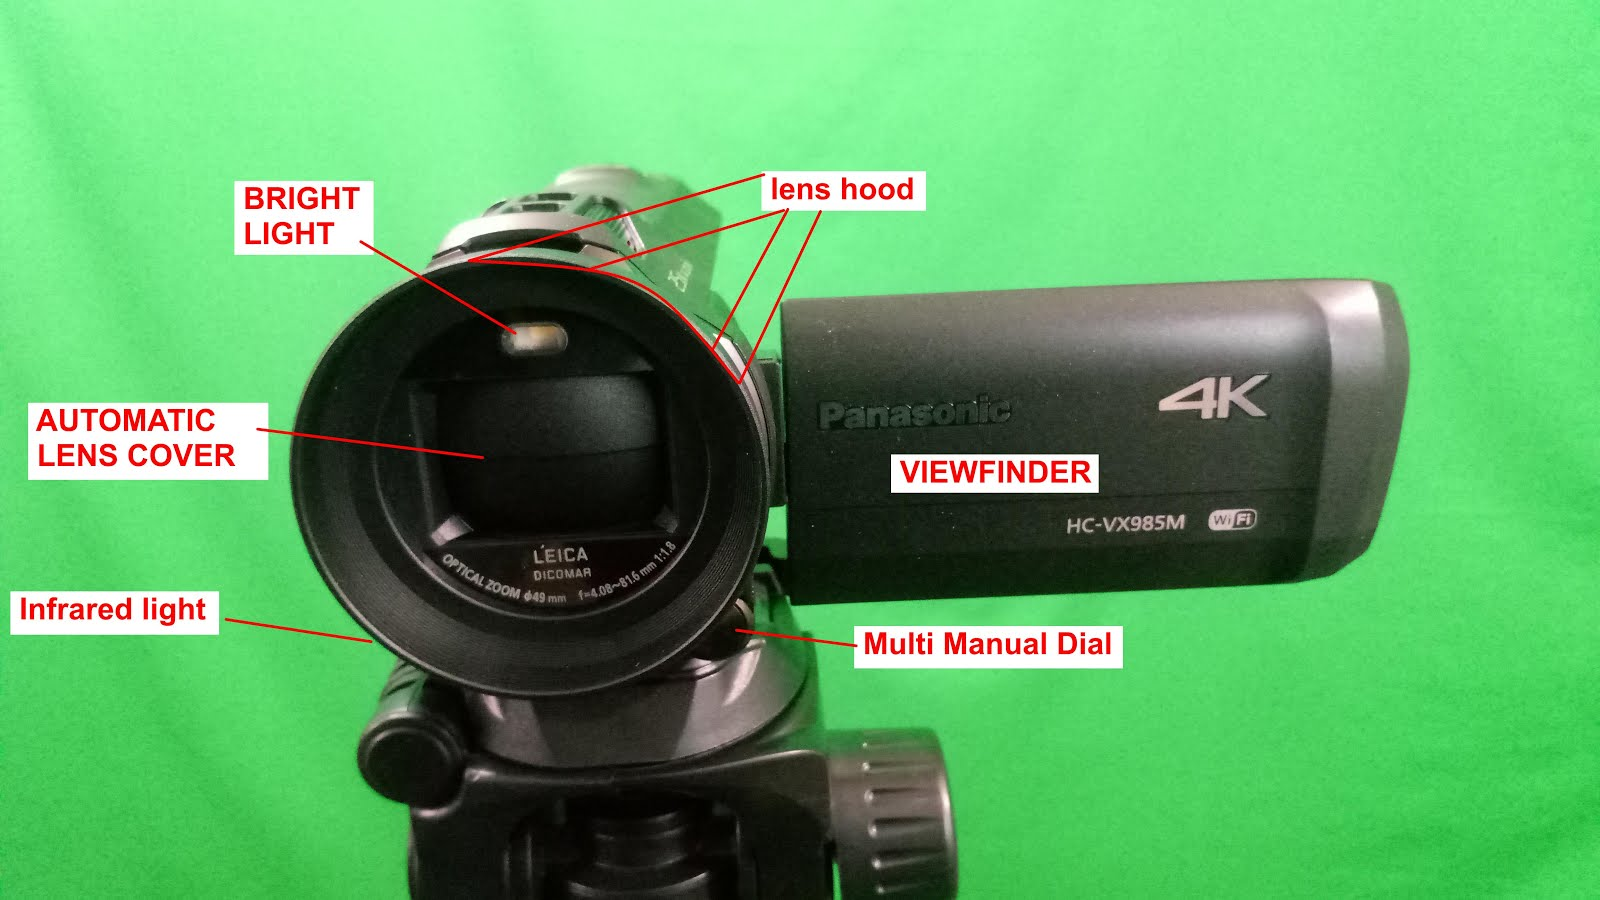 Accessories For Hc Vx985m According To English Product Manual